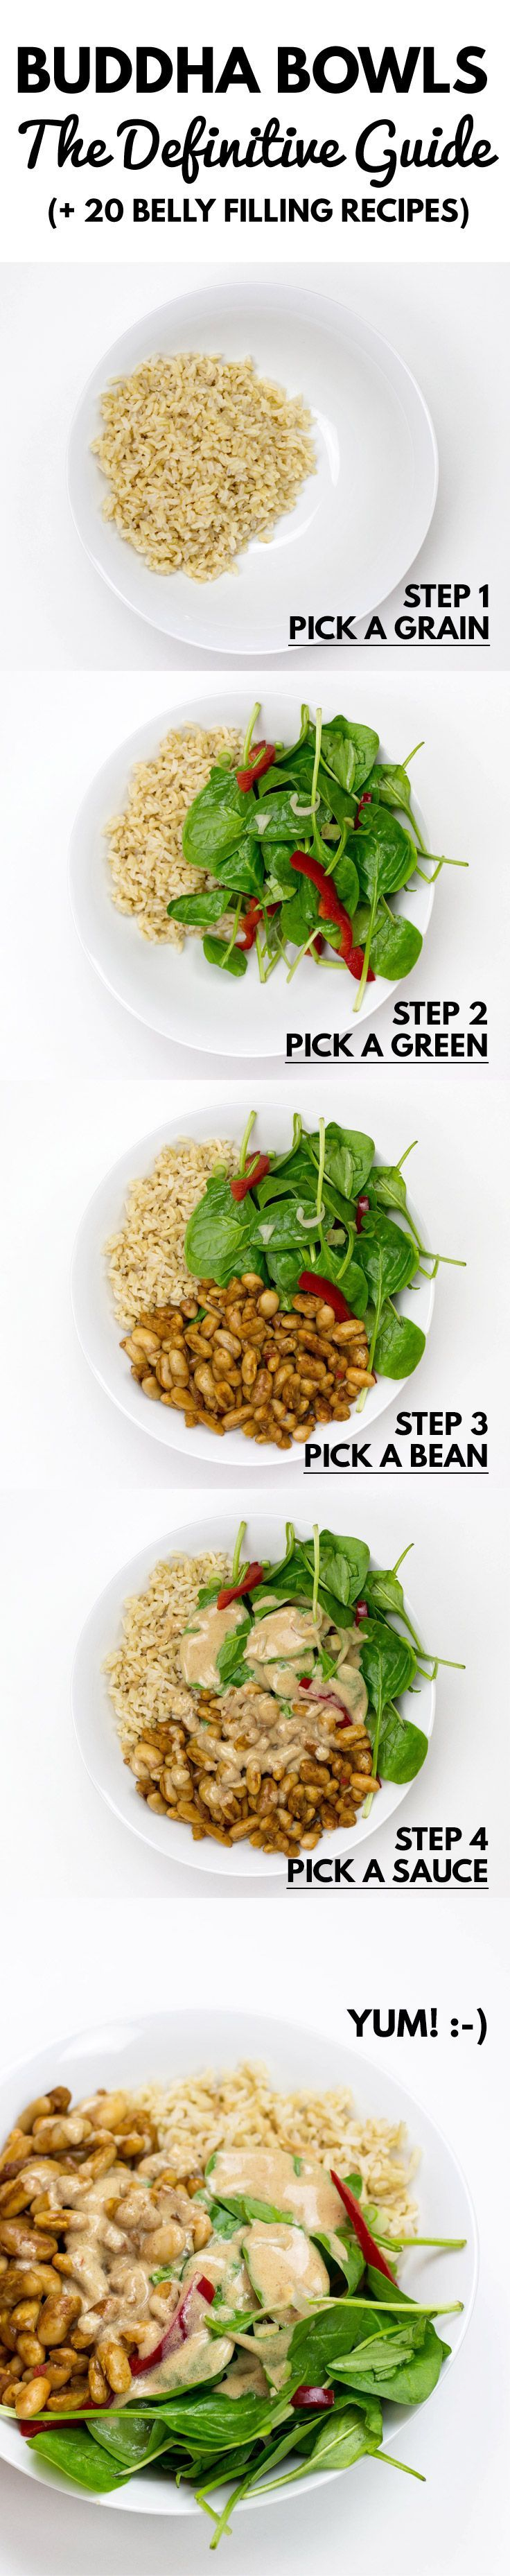 How to Make a Buddha Bowl - The Definitive Guide. (+ 20 Belly Filling Recipes) #vegan | hurrythefoodup.com